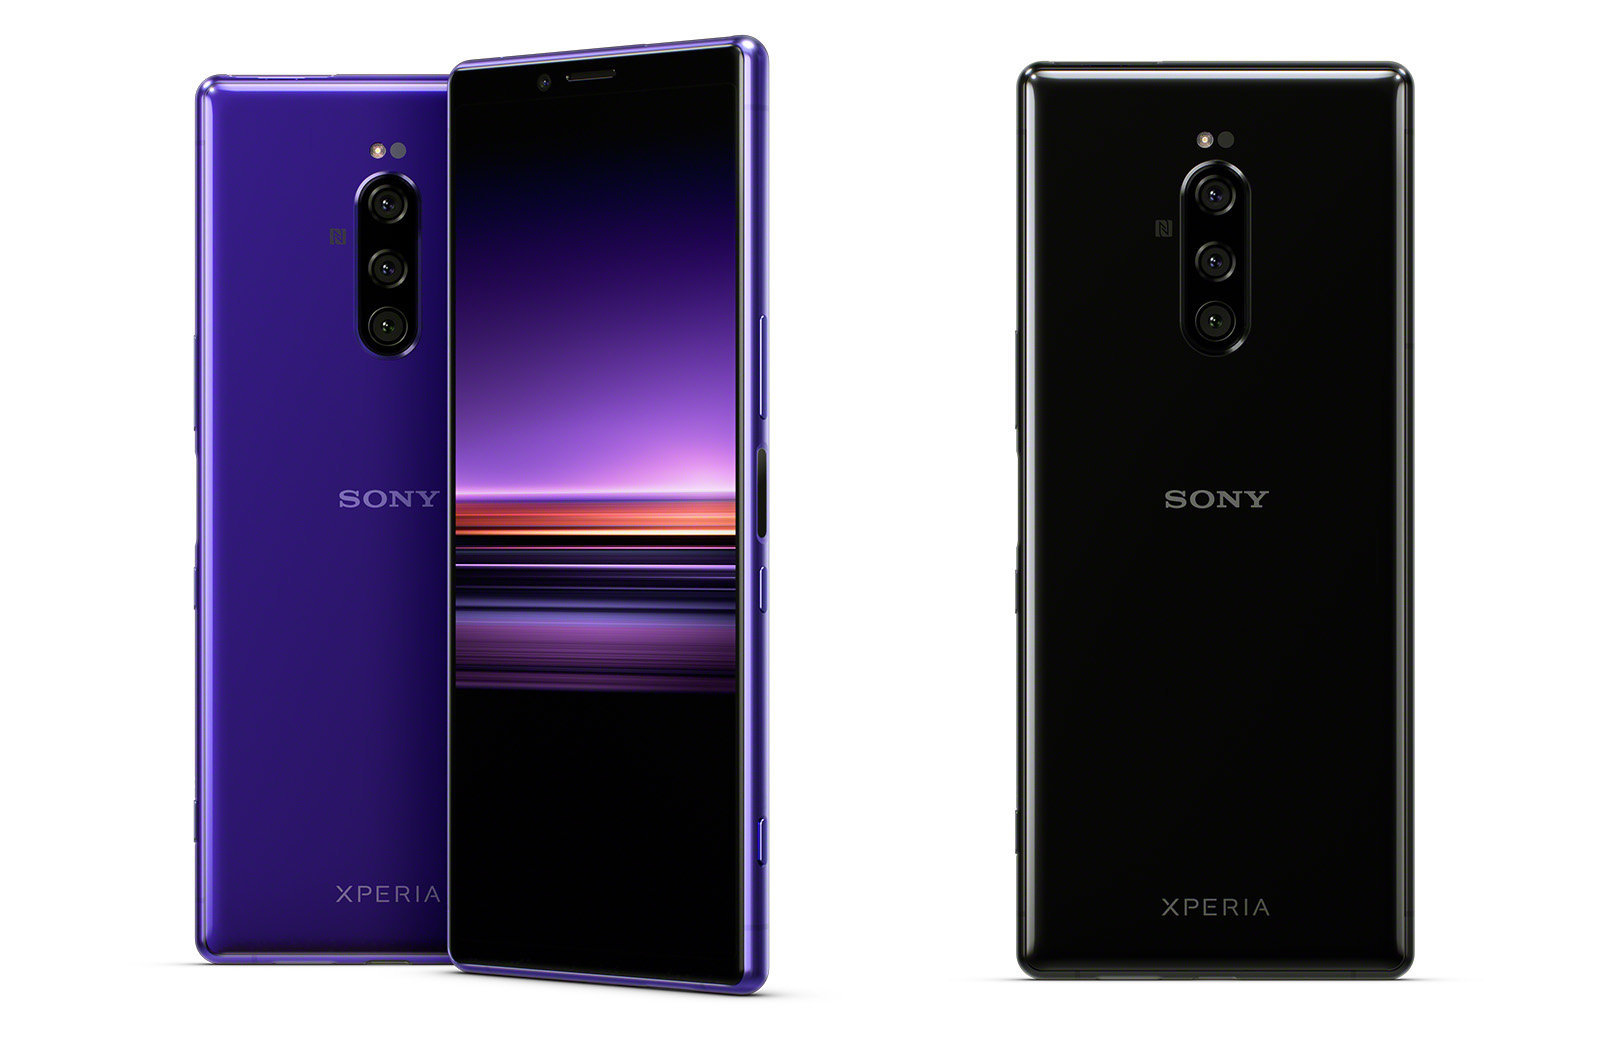 Sony Phone On Amazon The Sony Xperia 1 Is Now Listed On Amazon Us With A Hefty Us